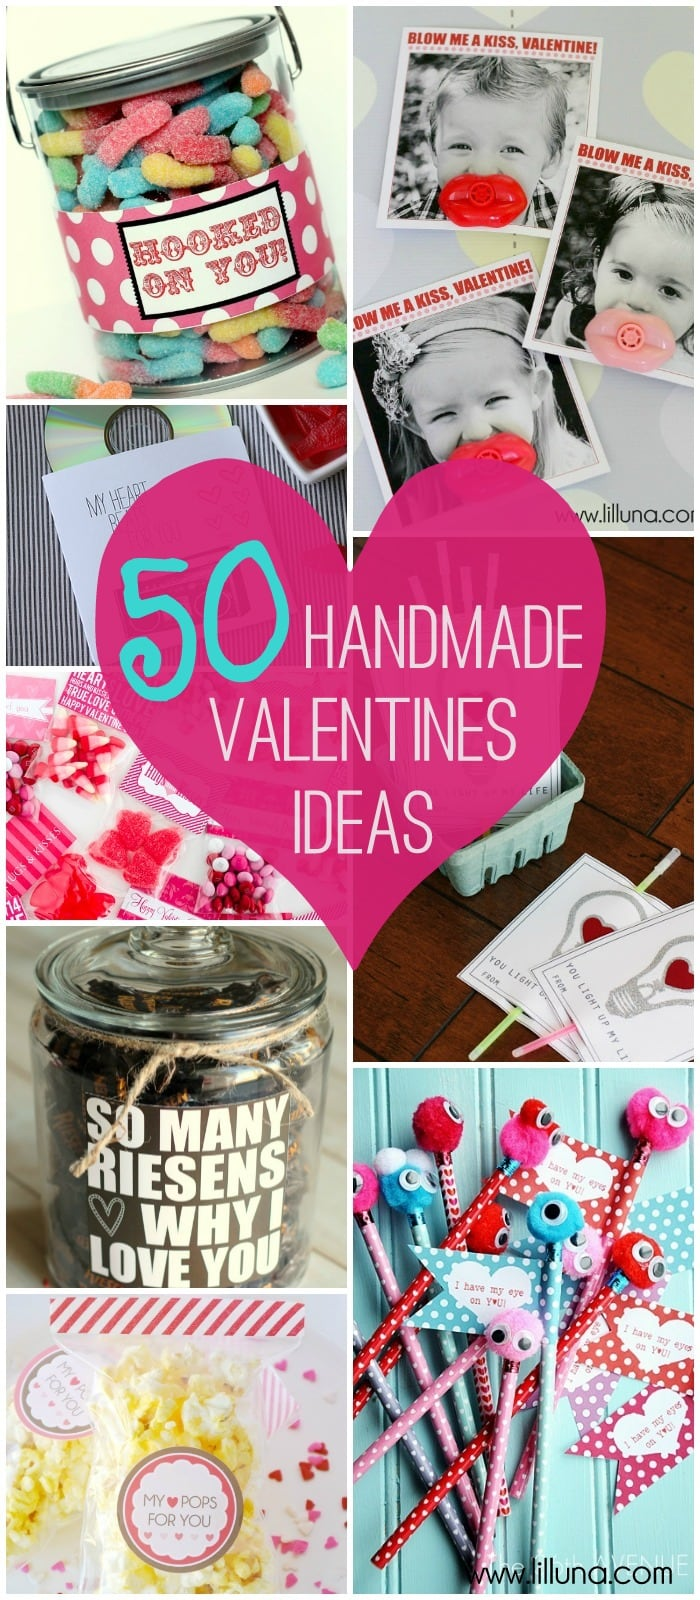 50+ Great Valentine's Ideas on { lilluna.com } A great collection of cute ideas for your Valentine's!